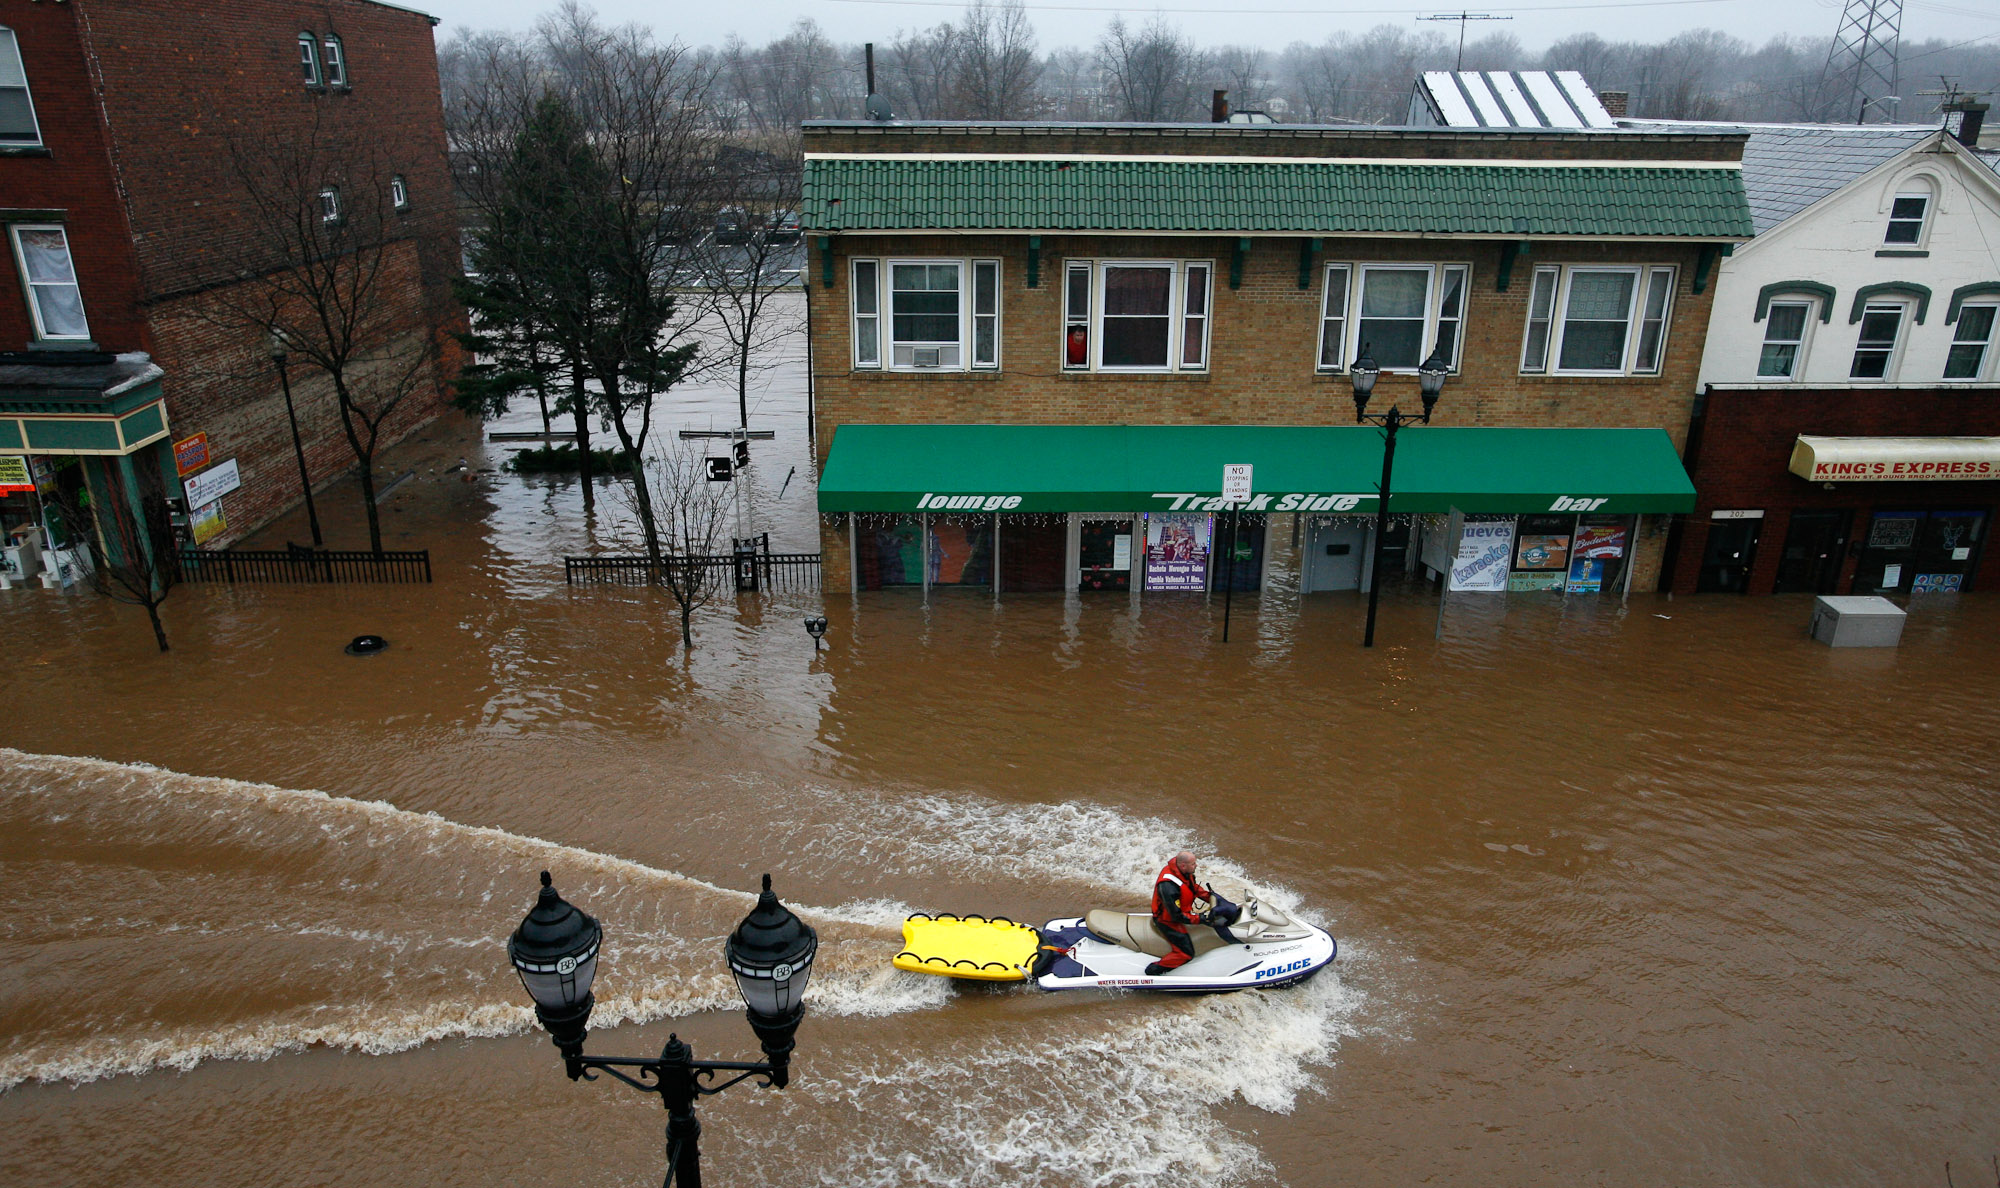 A Bound Brook Police Officer  rides down Main St. in Bound Brook, NJ looking for residents to be evacuated.  Residents evacuate and are rescued by Bound Brook Police and Rescue Squad and Somerset County Dive Team in  Bound Brook as the Raritan River rises from heavy rains. Photographed for The Star-Ledger